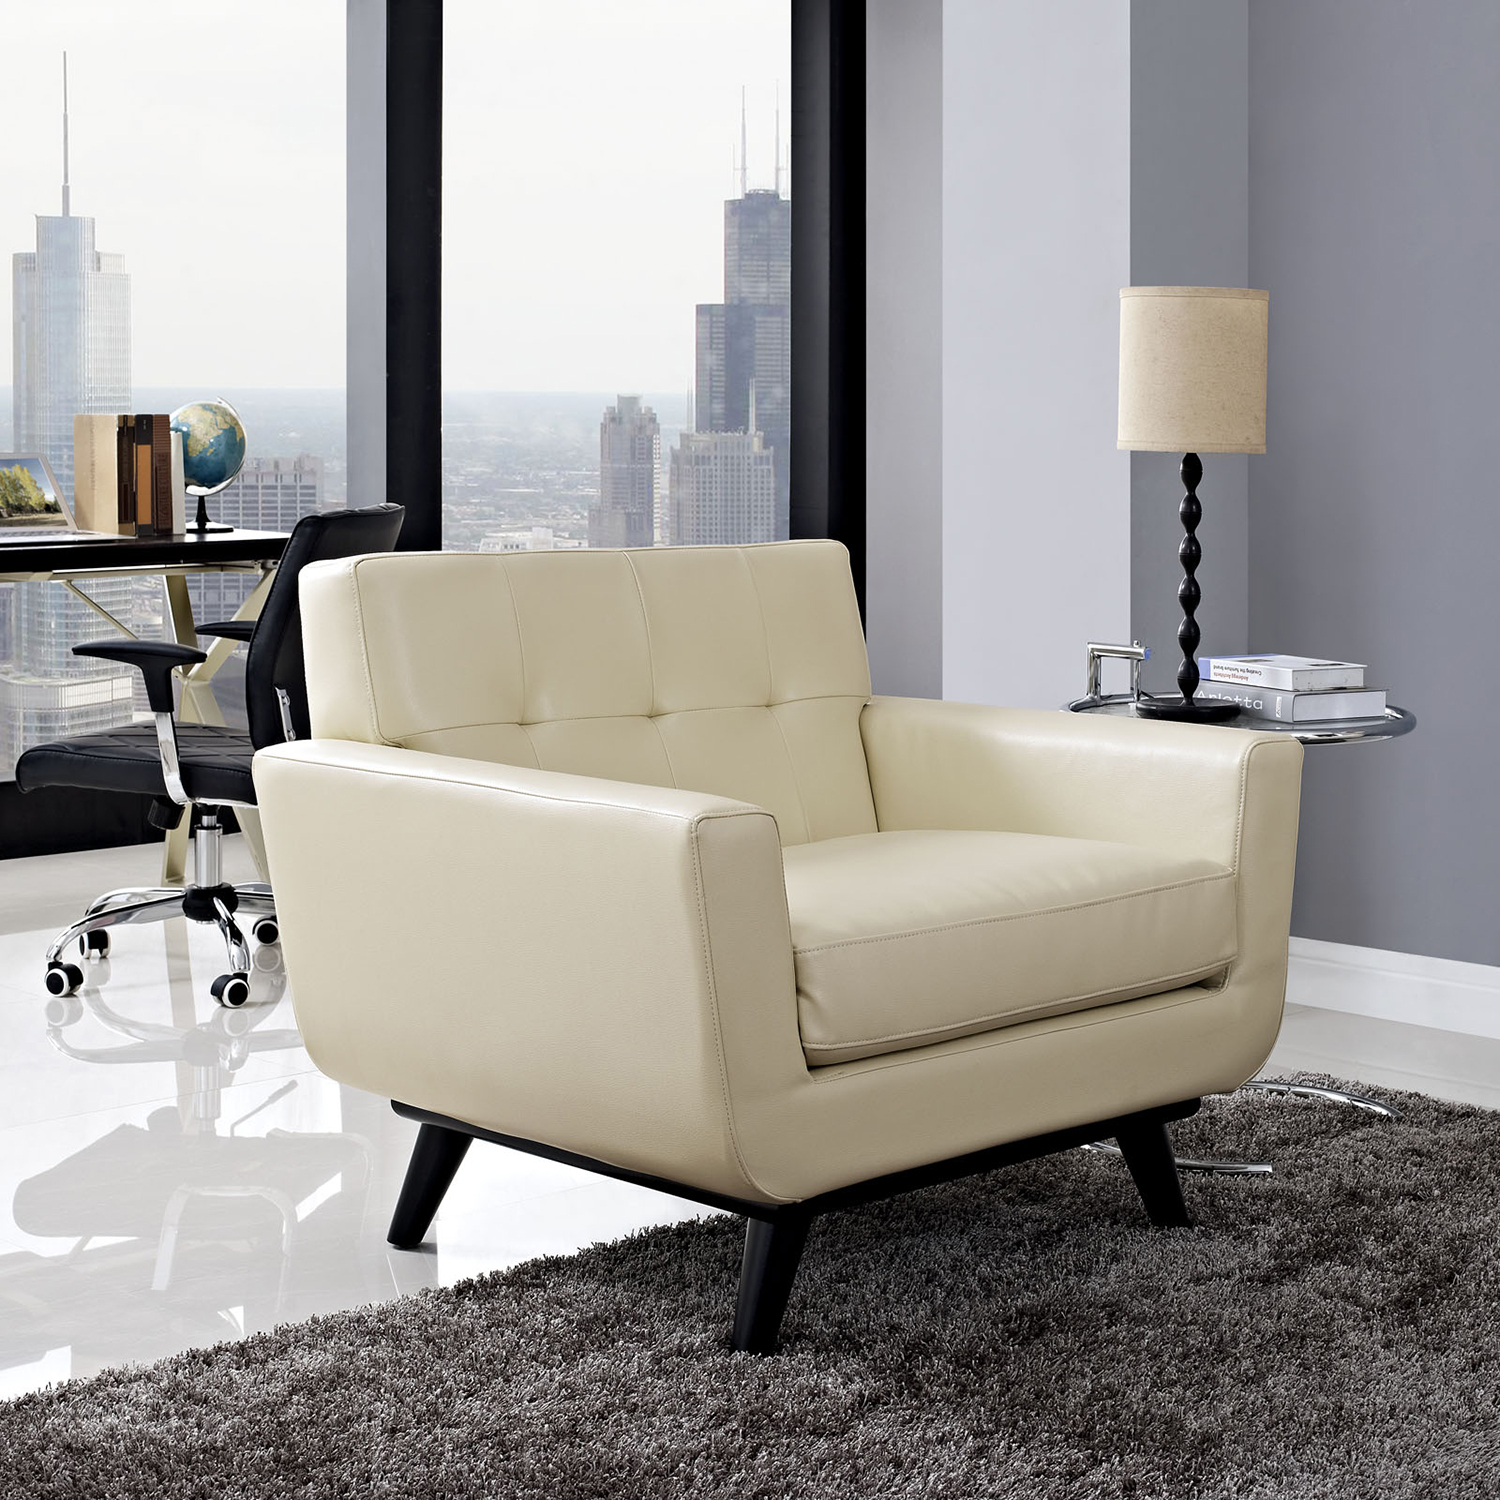 Engage Bonded Leather Armchair - Tufted, Beige - EEI-1336-BEI